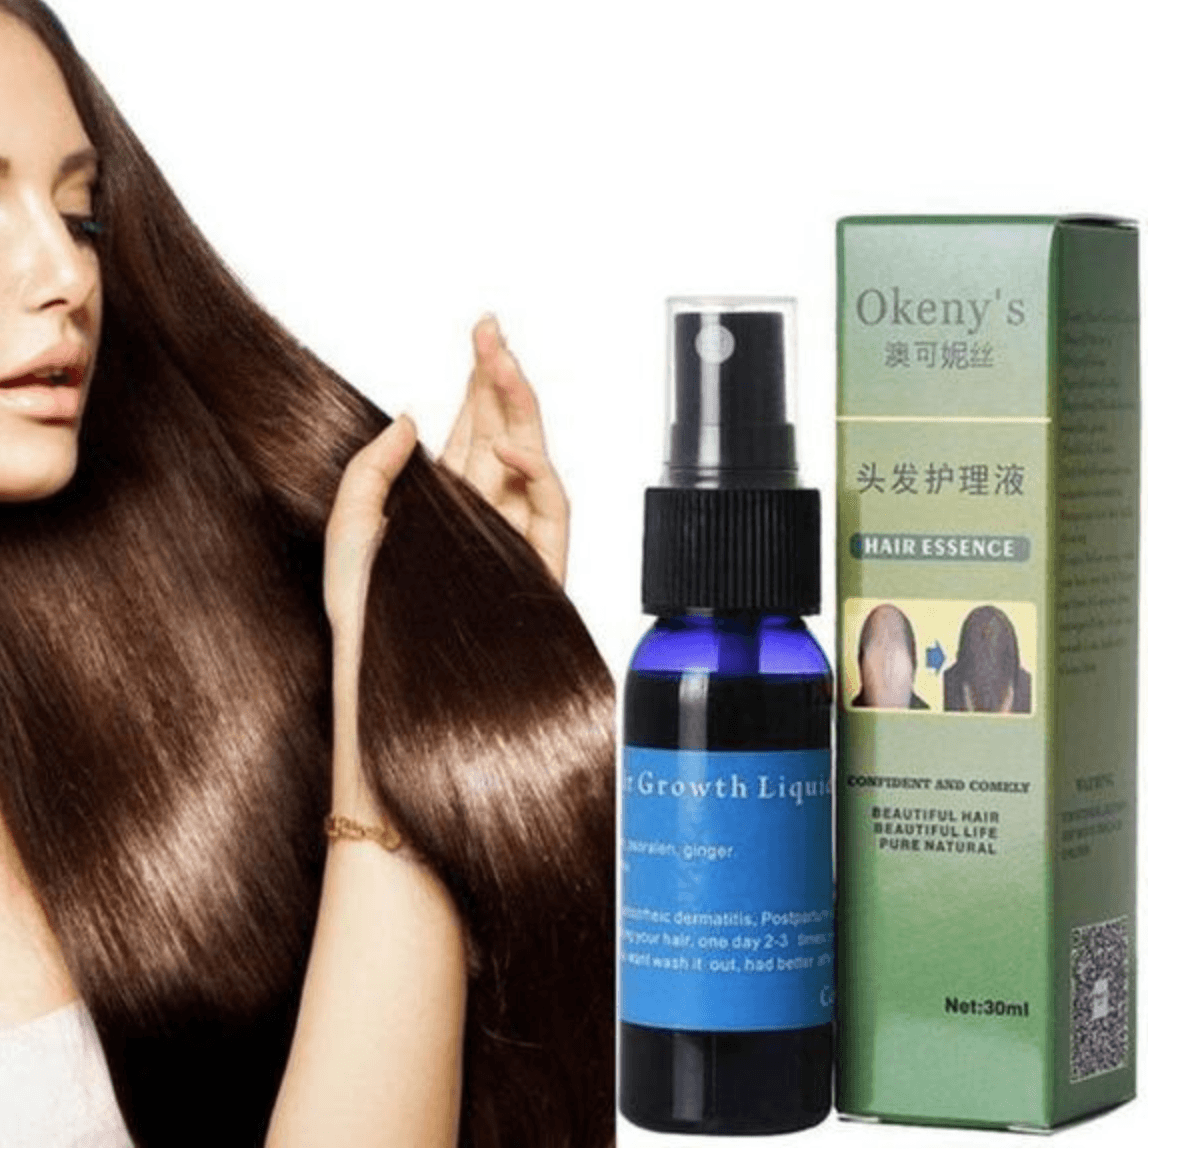 Ginger Extract Fast Hair Growth Spray | Freaky Inventions